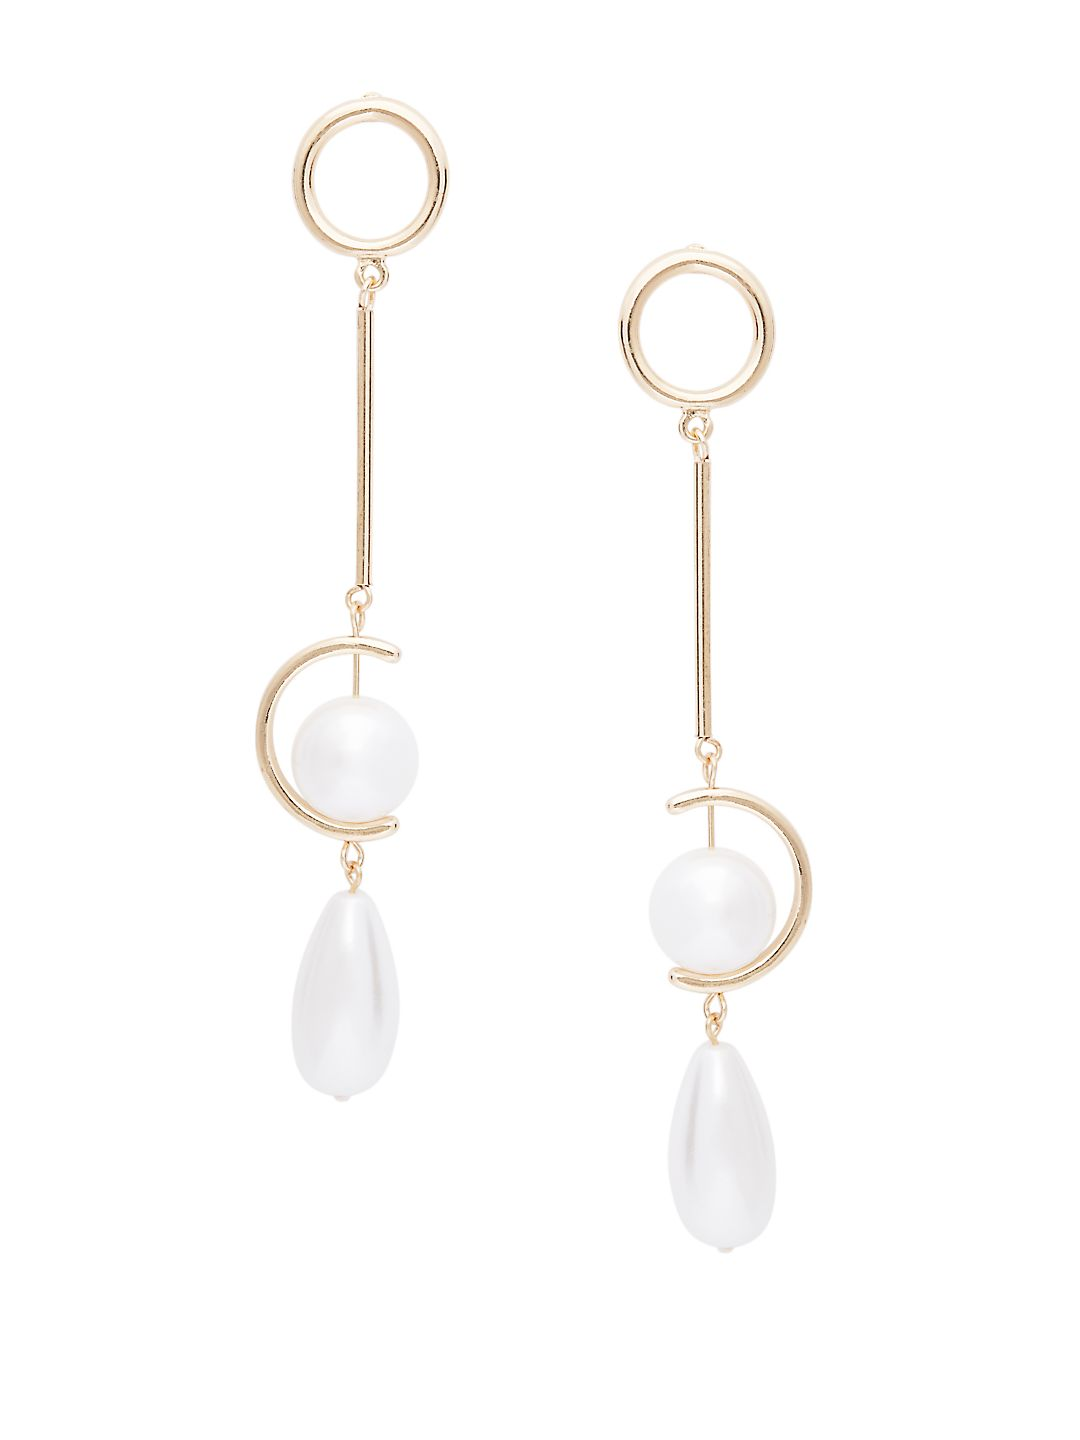 Sterling Silver & Faux Pearl Mismatched Earrings